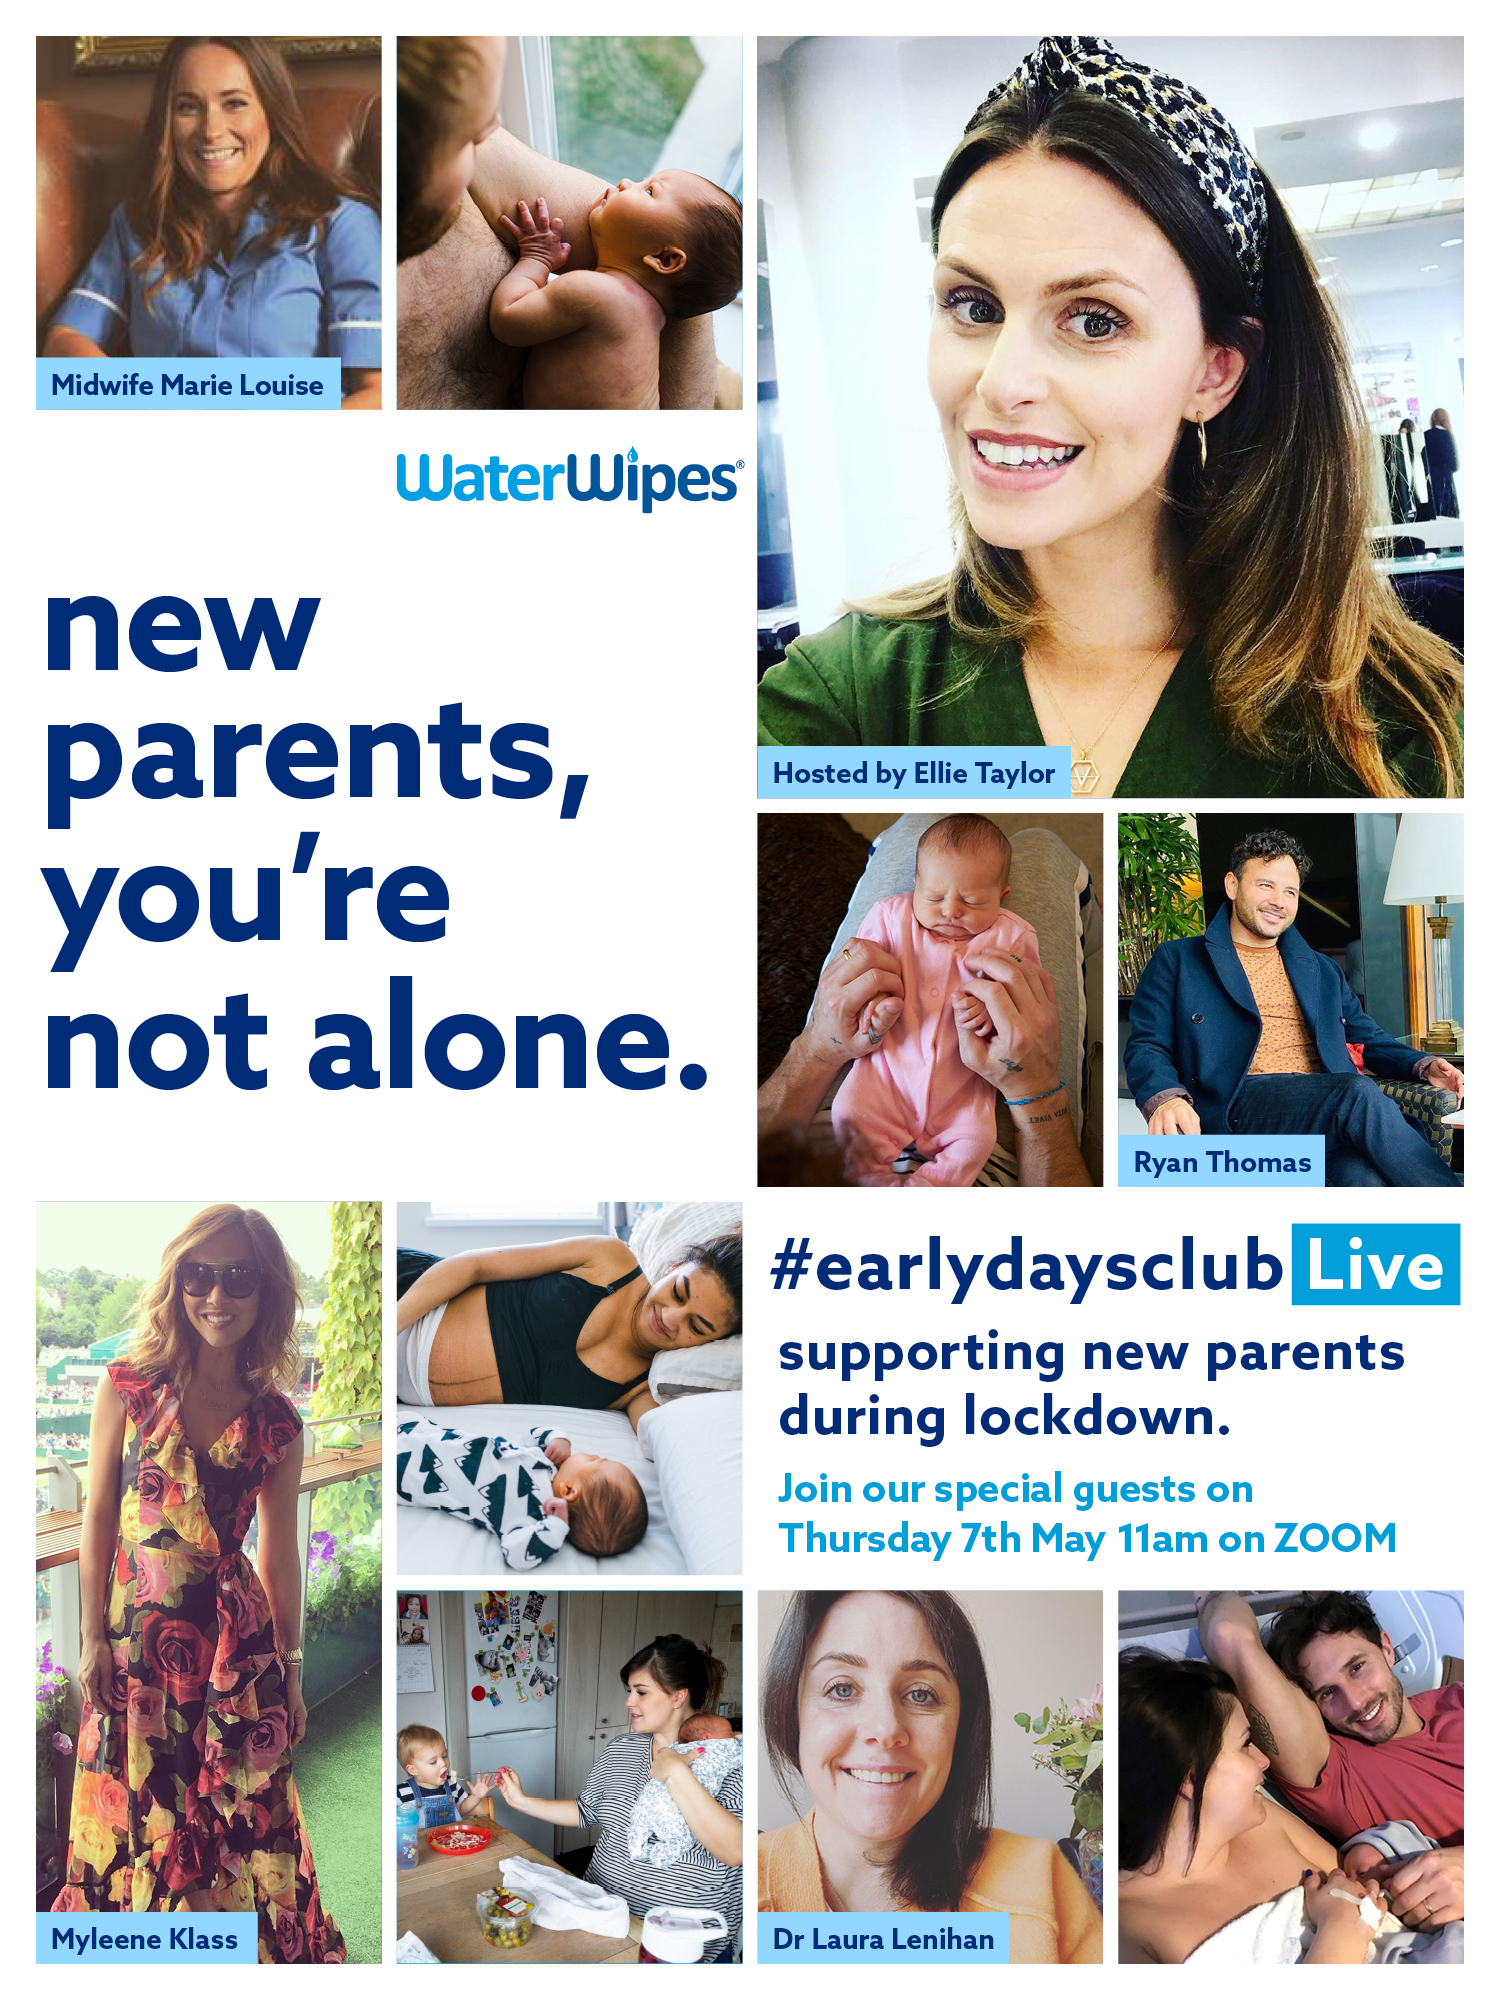 Myleene Klass, Ryan Thomas & Ellie Taylor Launched WaterWipes #EarlyDaysClub, A Virtual Support Network For Expectant And New Parents During Lockdown  image